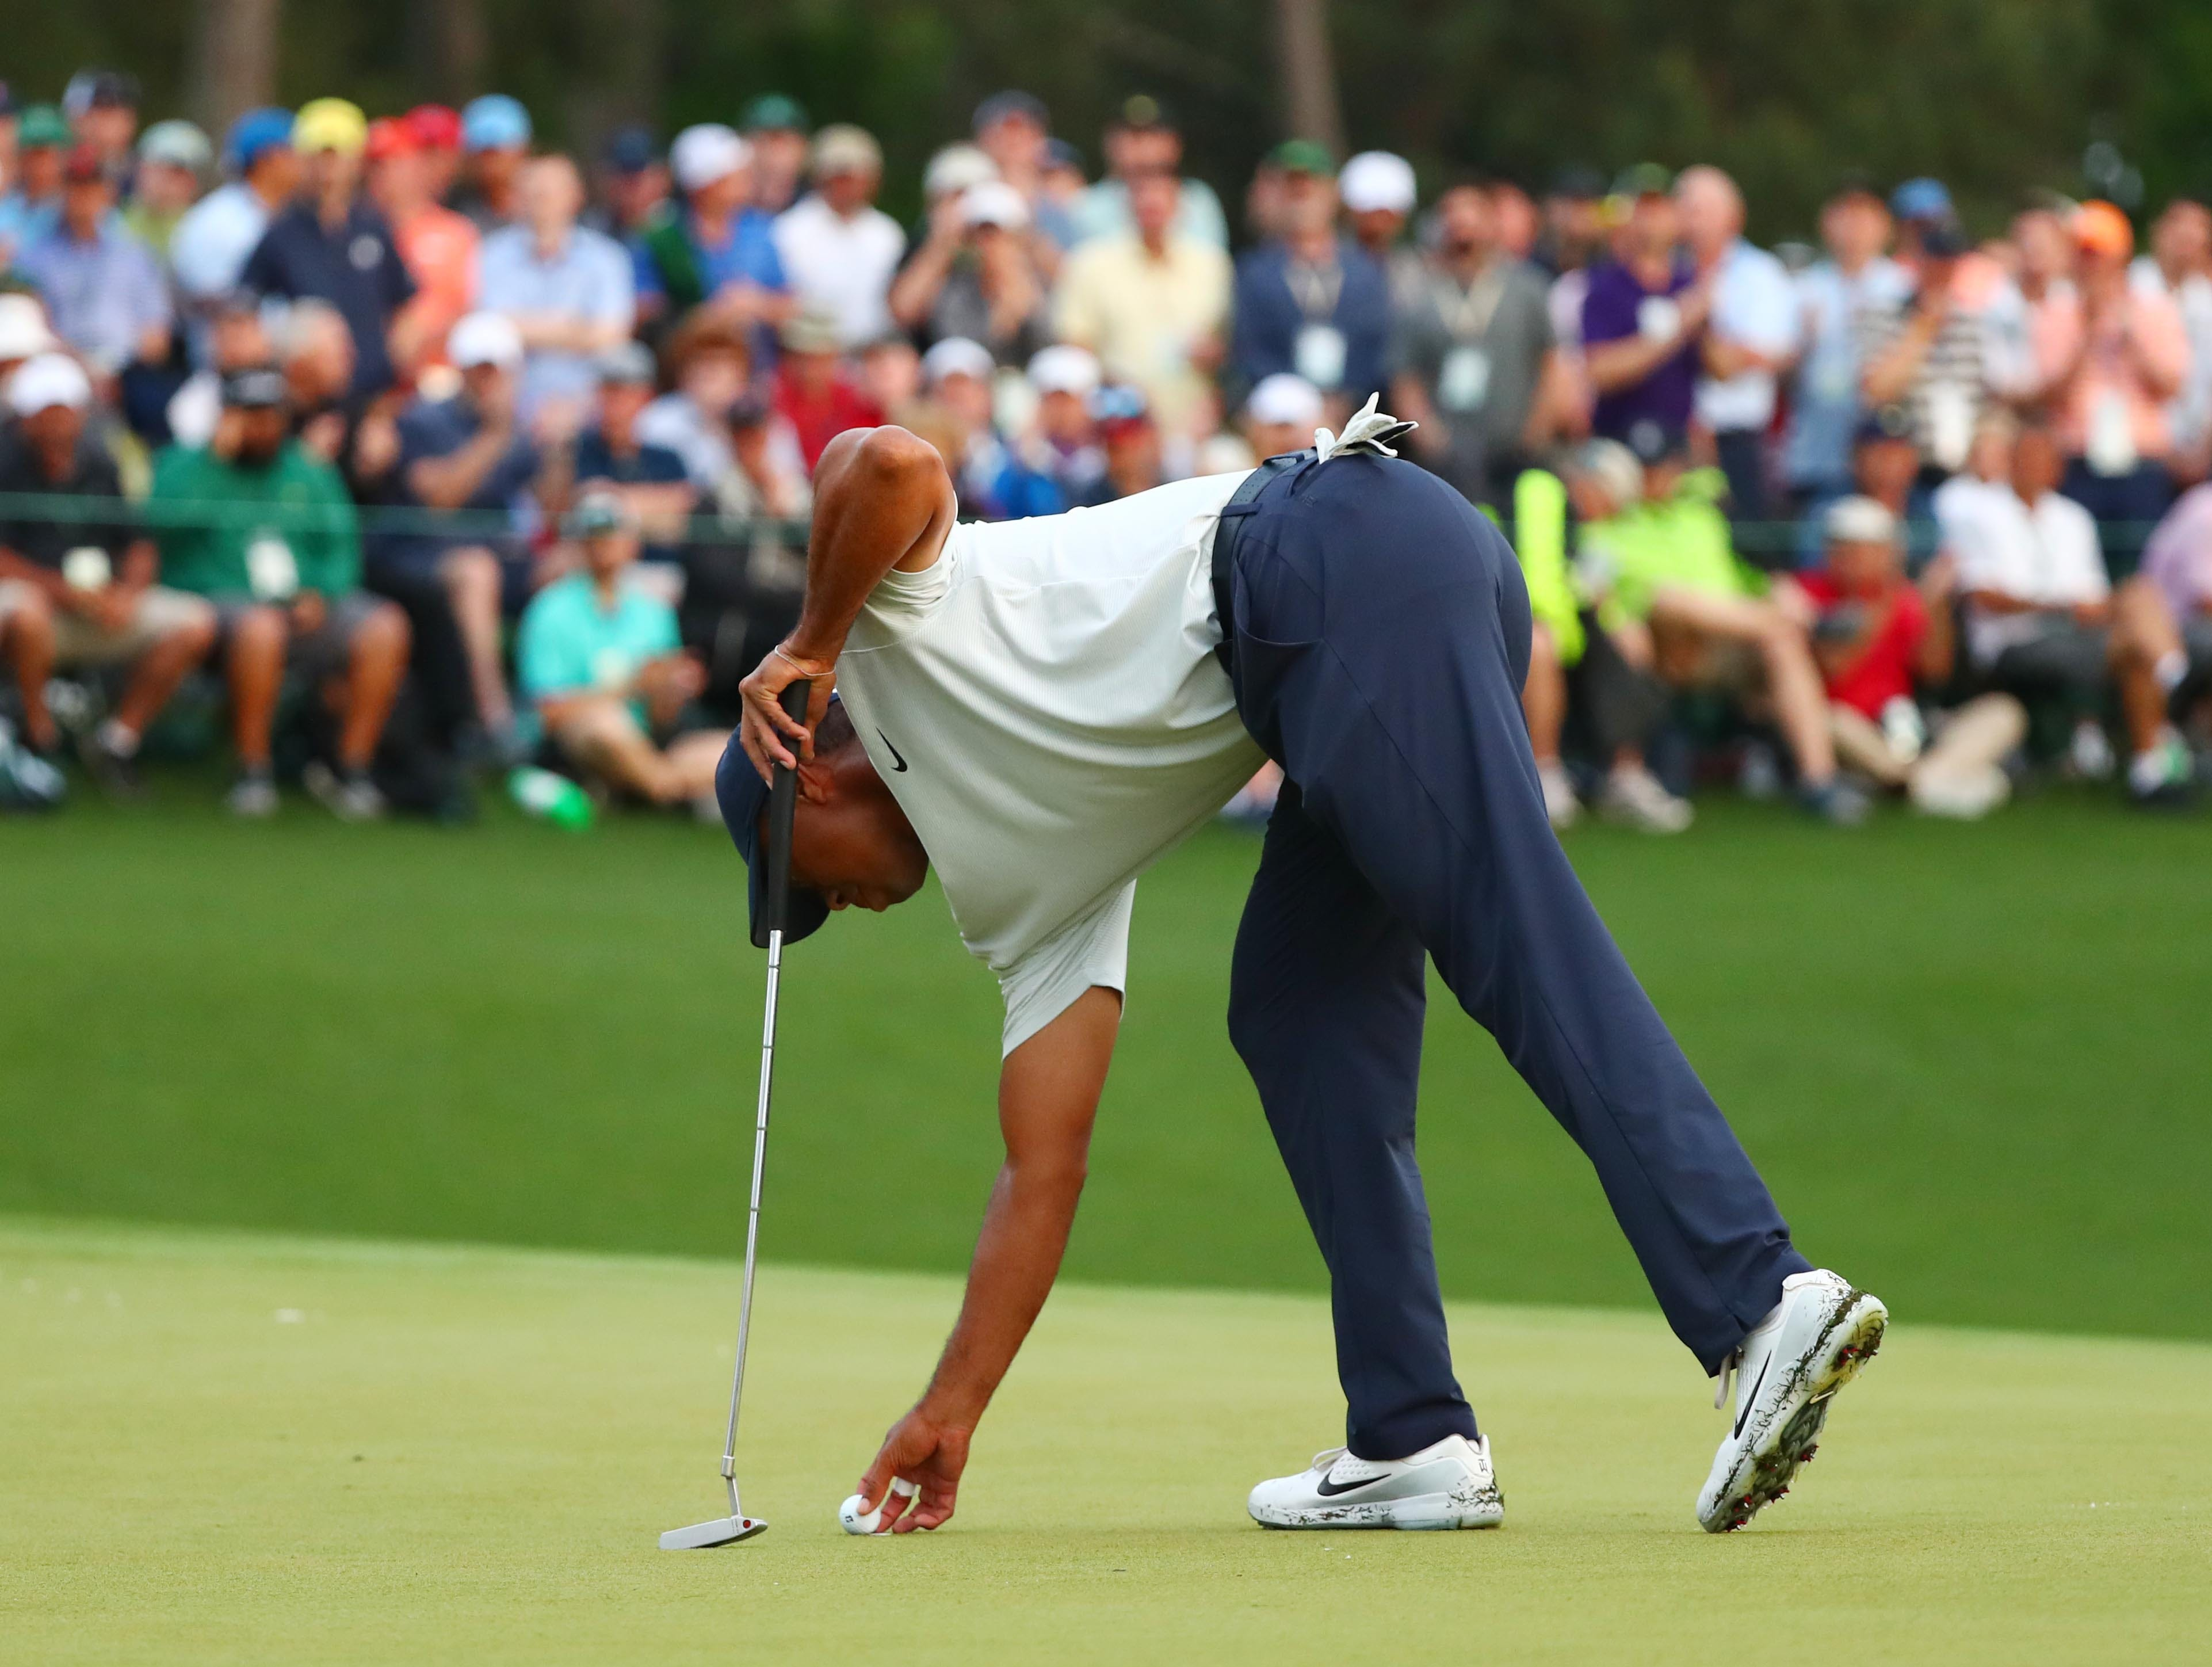 Apr 12, 2019; Augusta, GA, USA; Tiger Woods marks his ball spot on the 18th green during the second round of The Masters golf tournament at Augusta National Golf Club. Mandatory Credit: Rob Schumacher-USA TODAY Sports